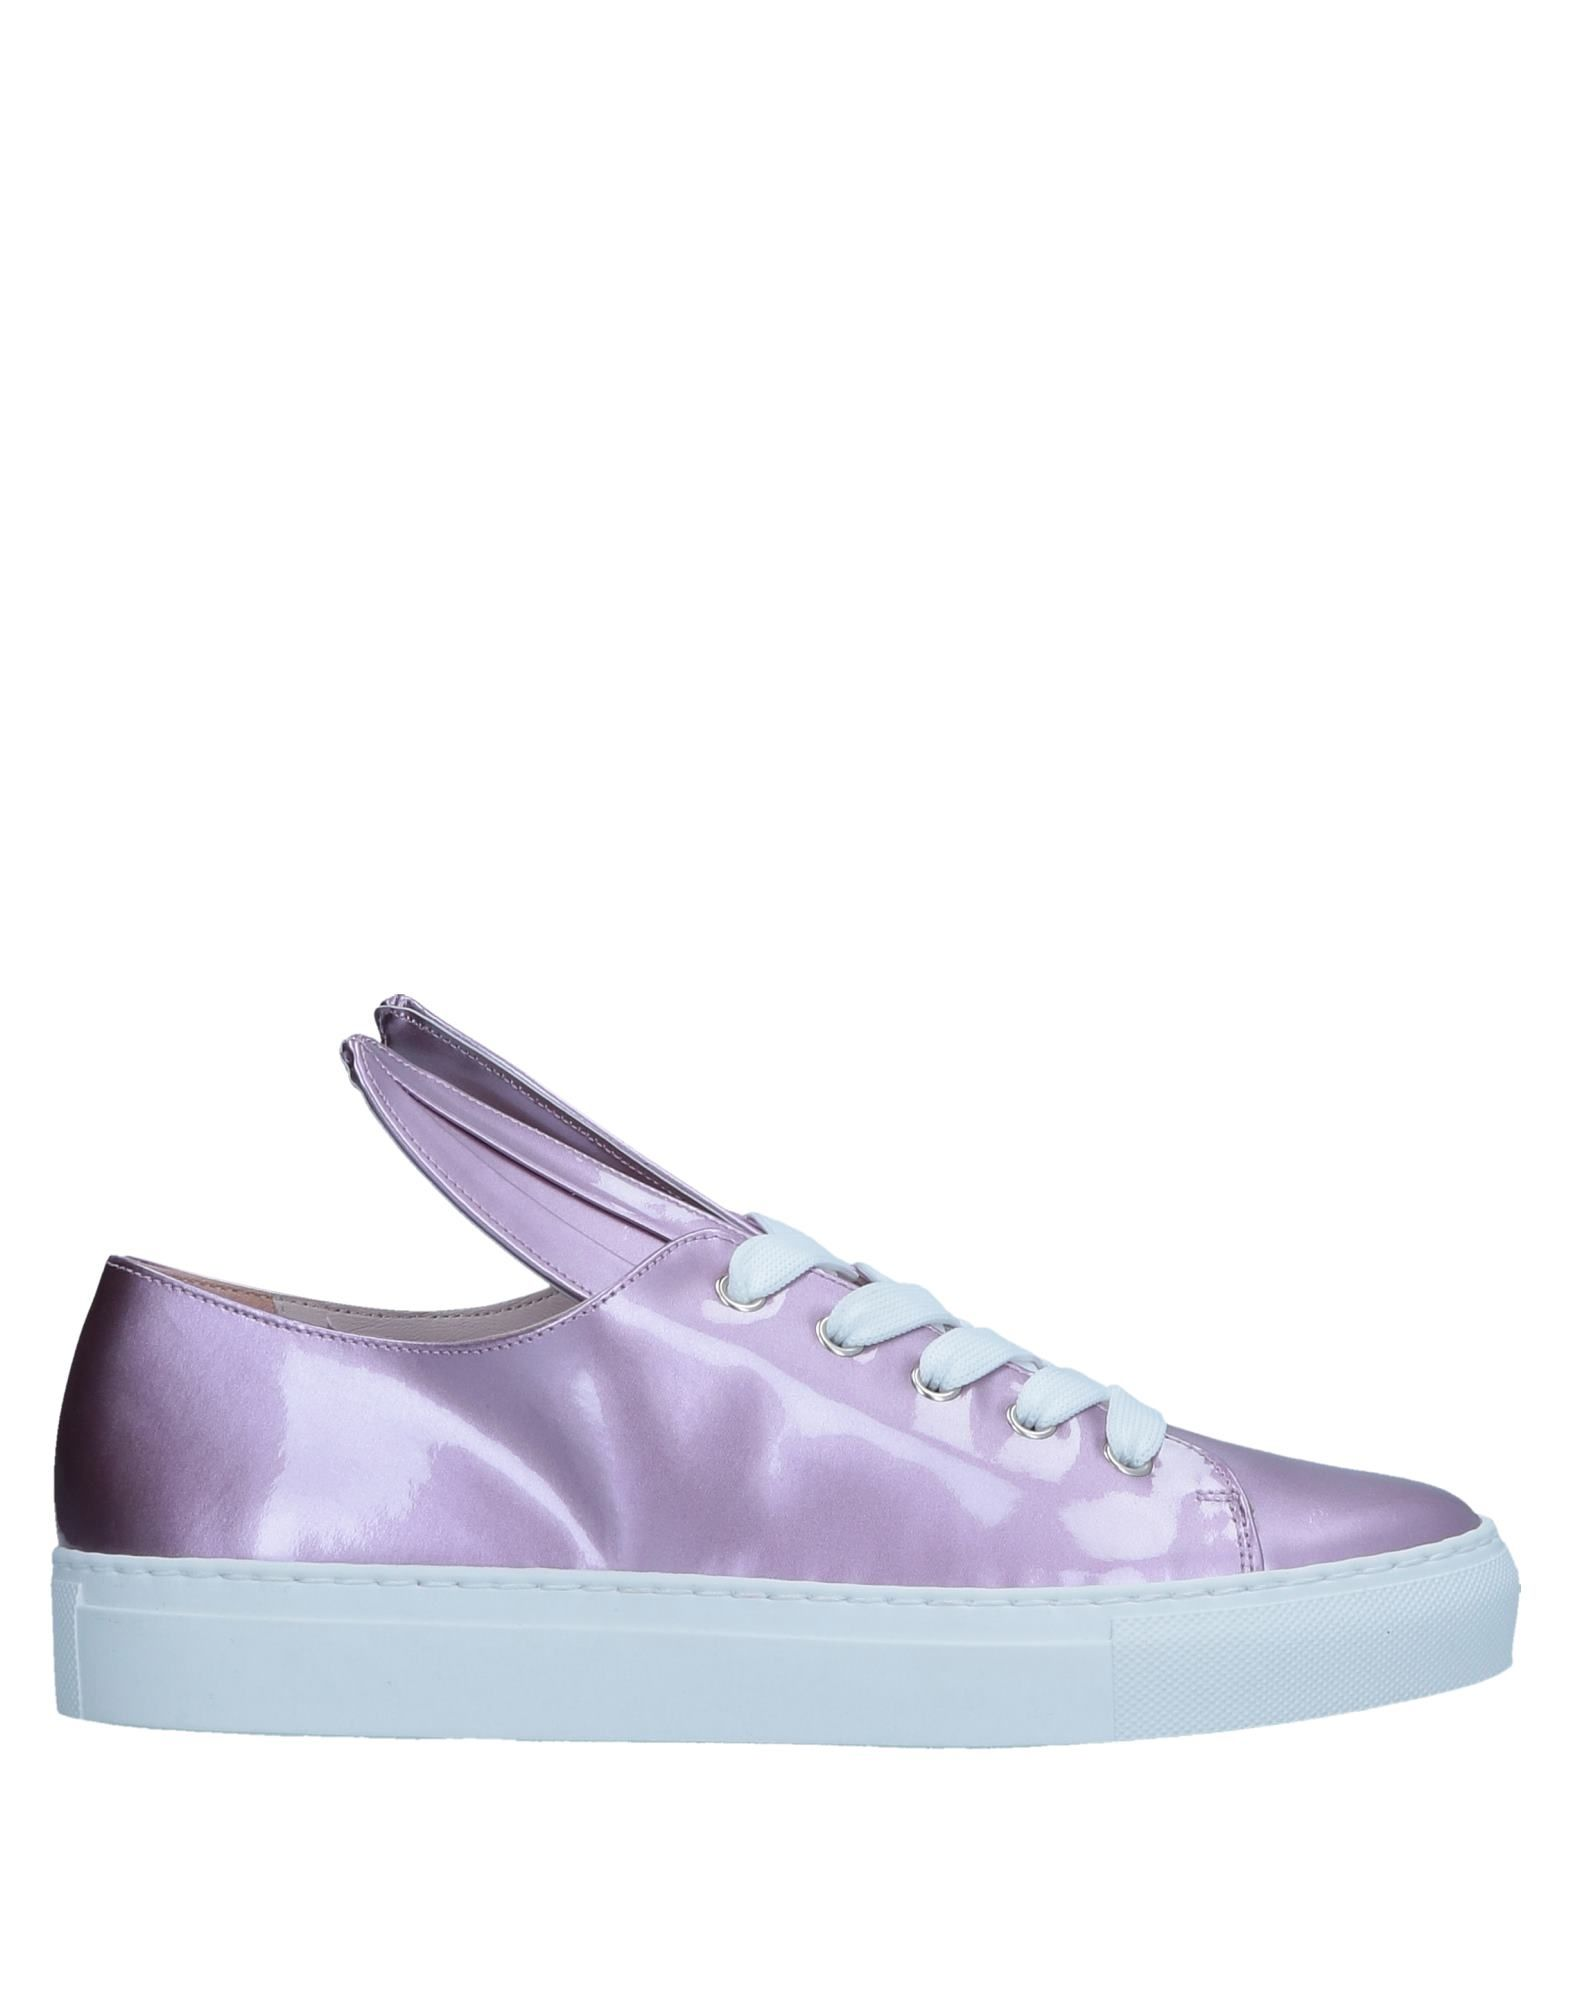 Minna on Parikka Sneakers - Women Minna Parikka Sneakers online on Minna  Australia - 11557215MN c5772c